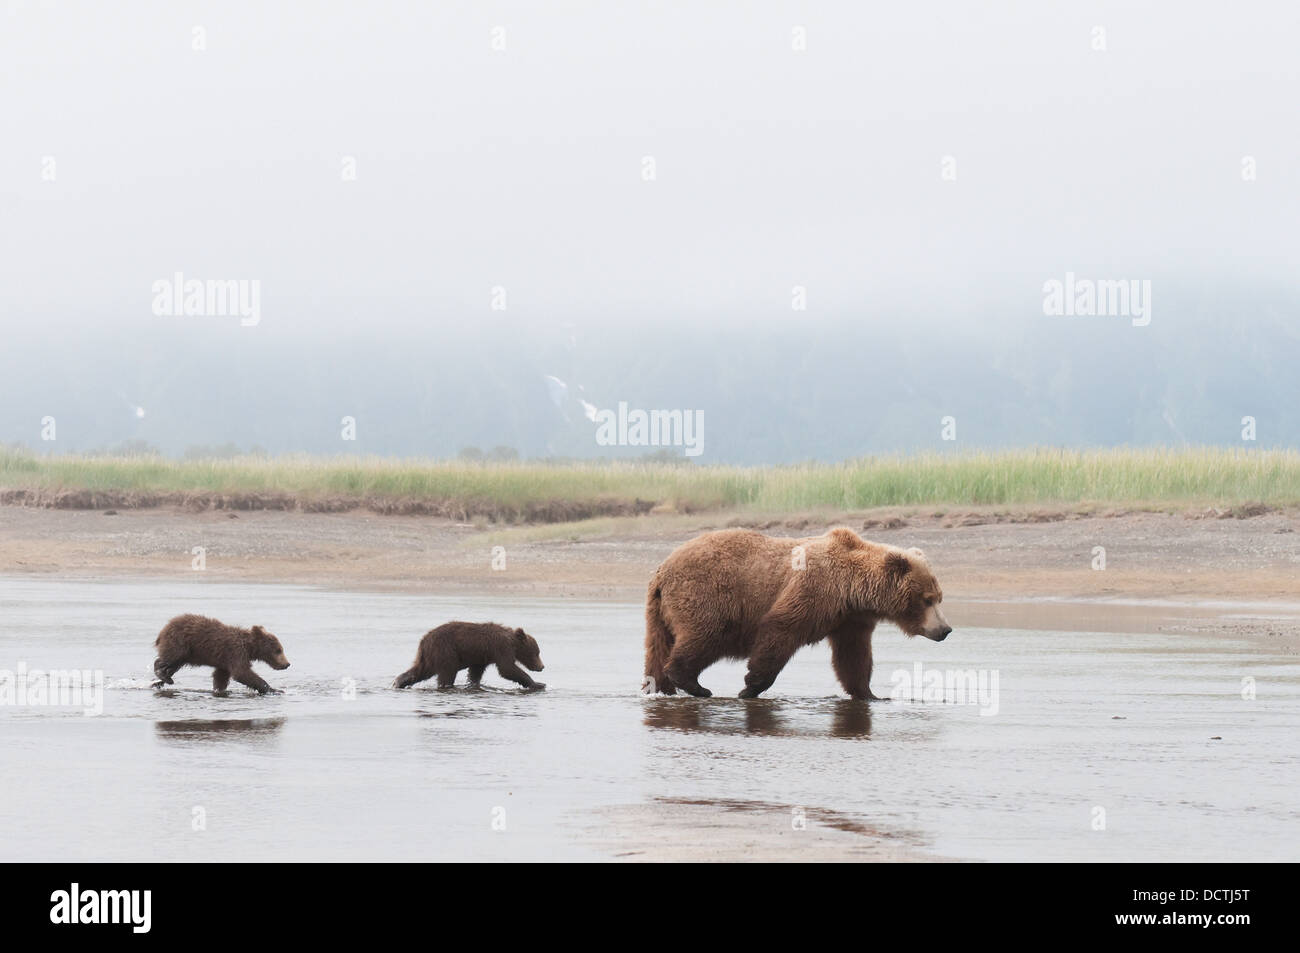 A Brown Grizzly Bear (Ursus Arctos Horribilis) Crossing A River With Her Two Cubs; Alaska, United States Of America - Stock Image